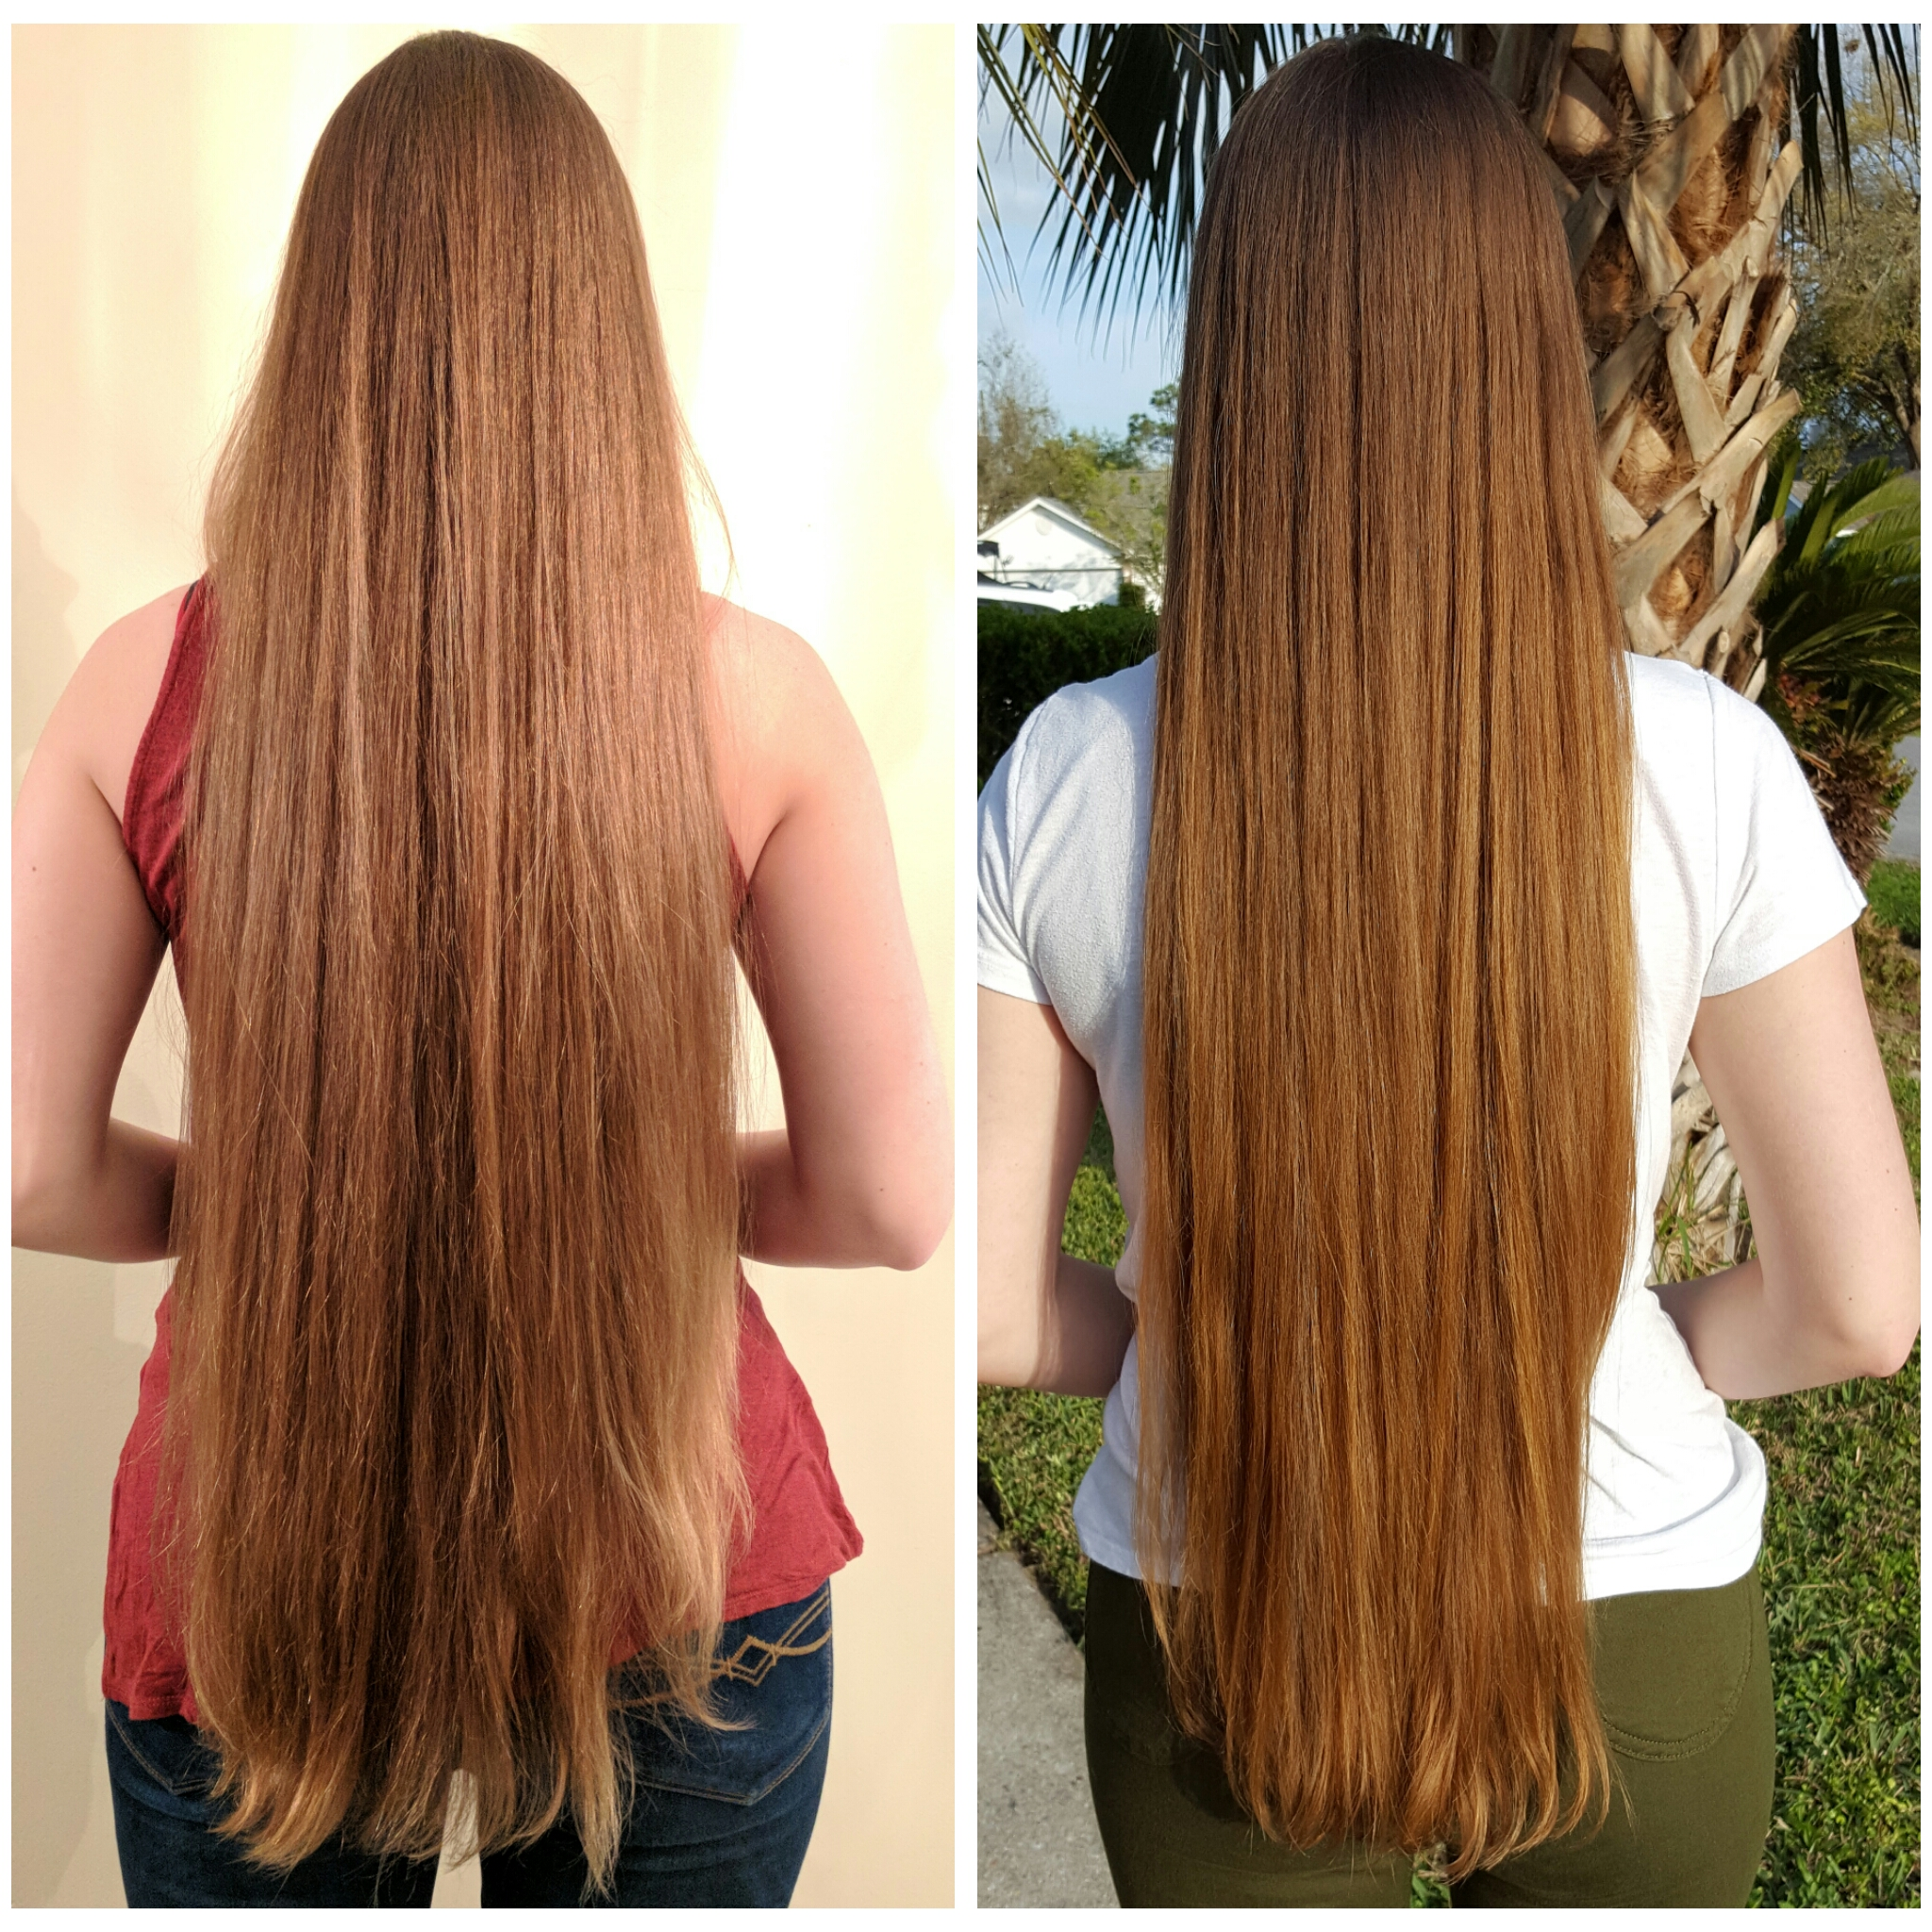 Guest Blog How Katy Accelerated Her Hair Growth Using